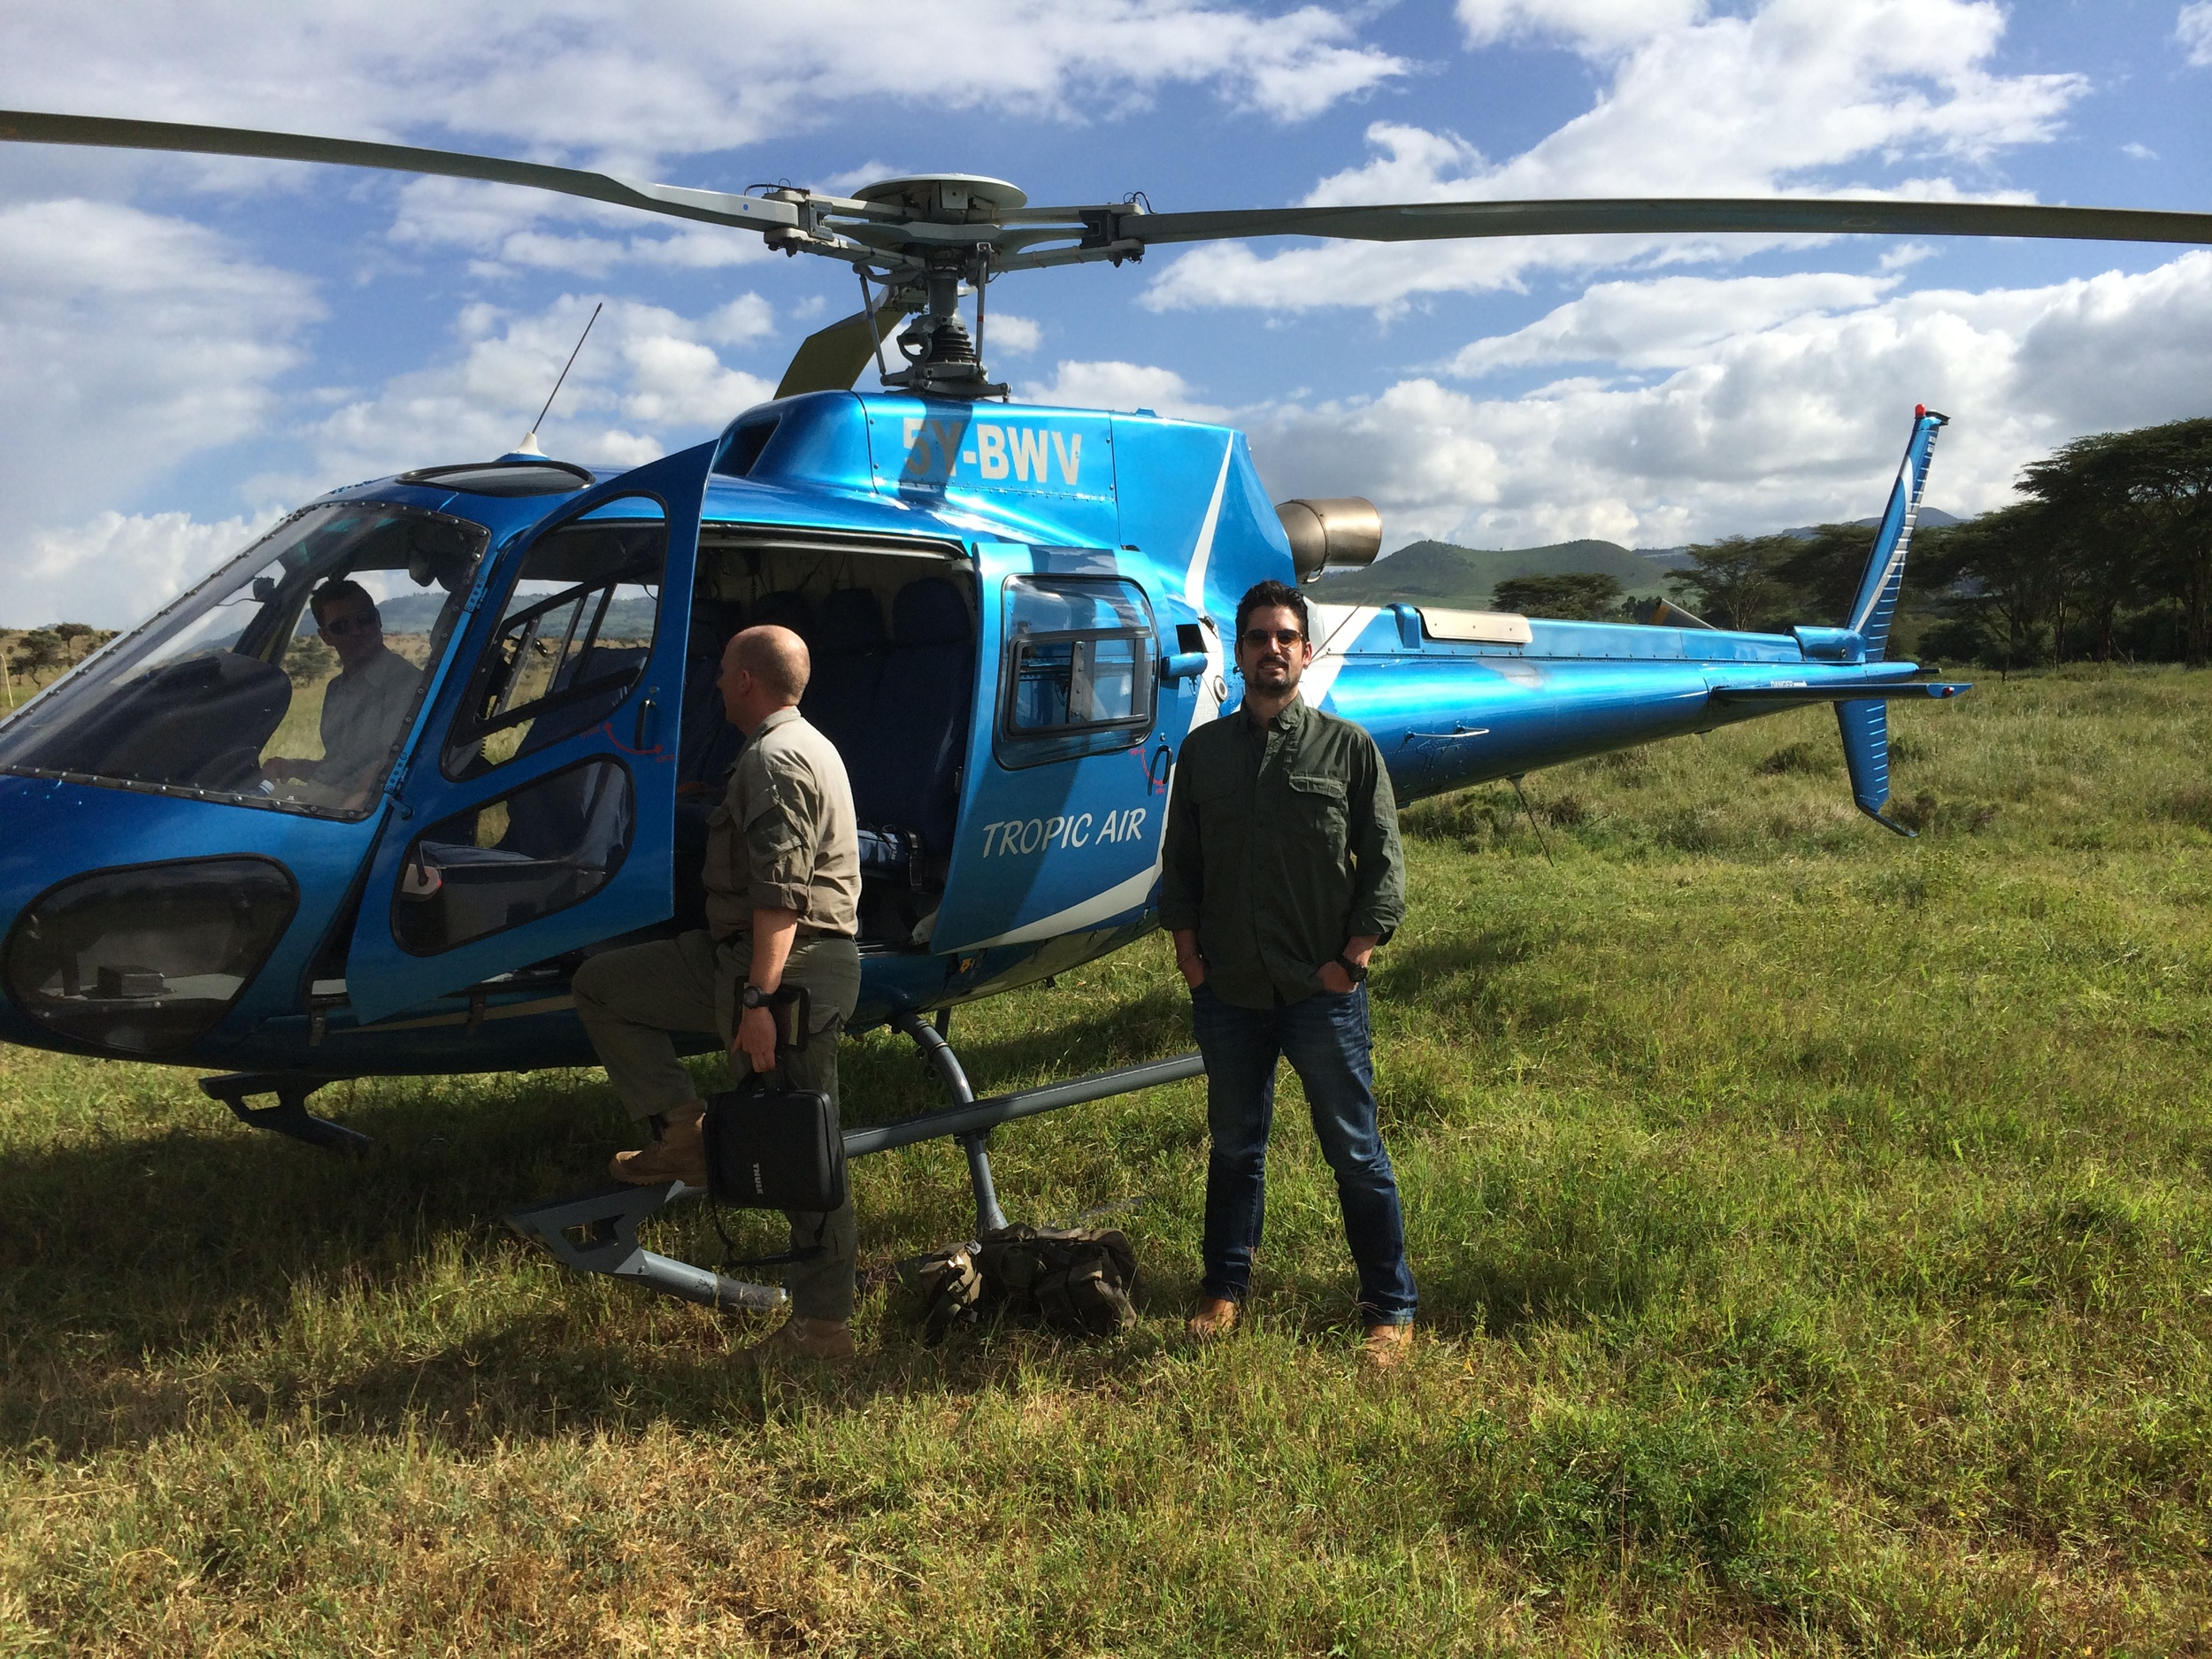 Me next to our helicopter just before flying over Kenya.JPG